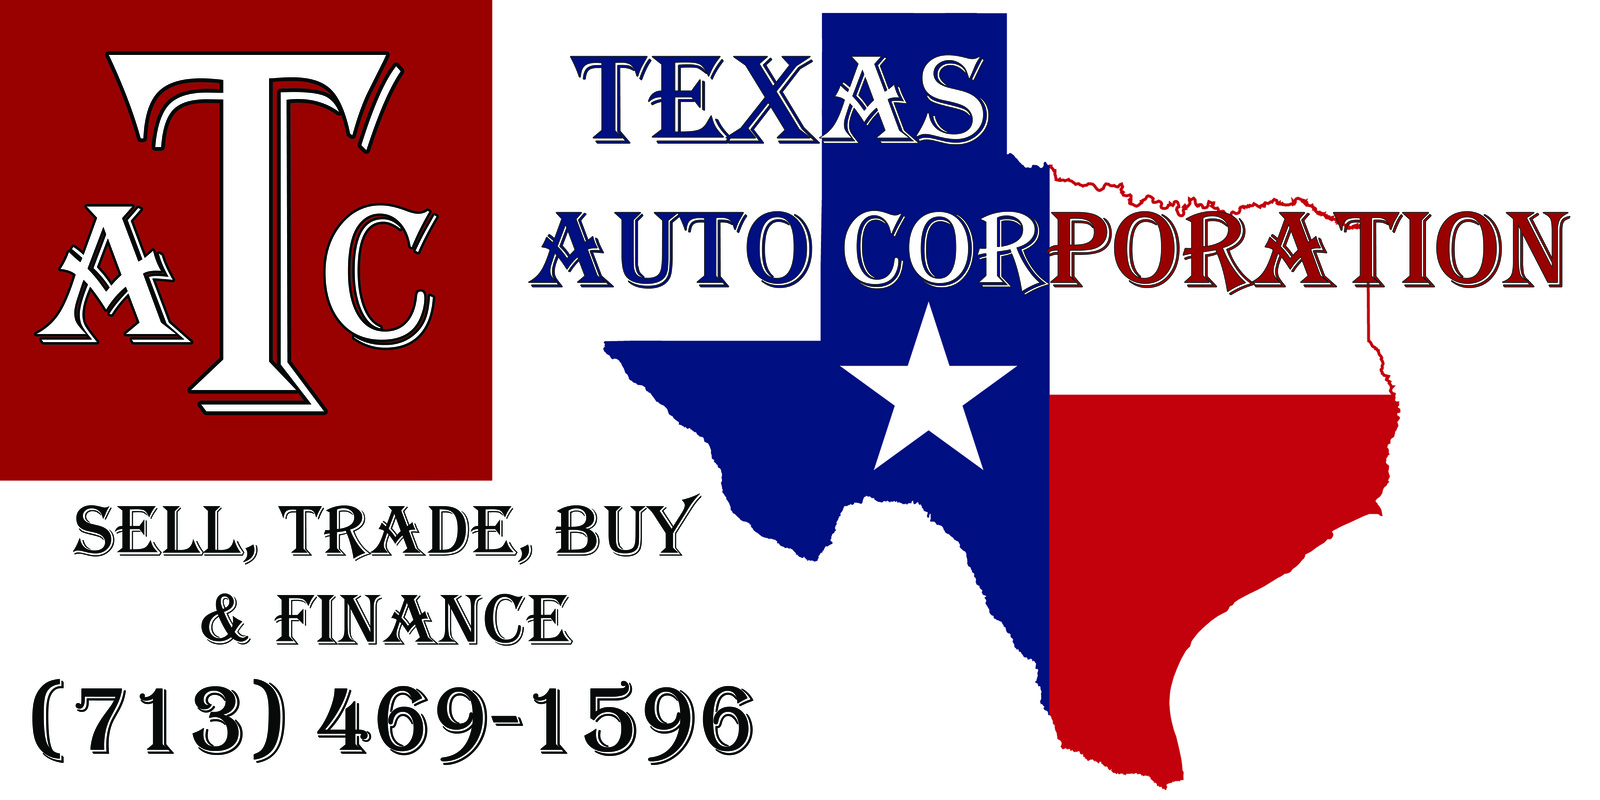 Houston Ram Dealers >> Texas Auto Corporation - Houston, TX: Read Consumer reviews, Browse Used and New Cars for Sale